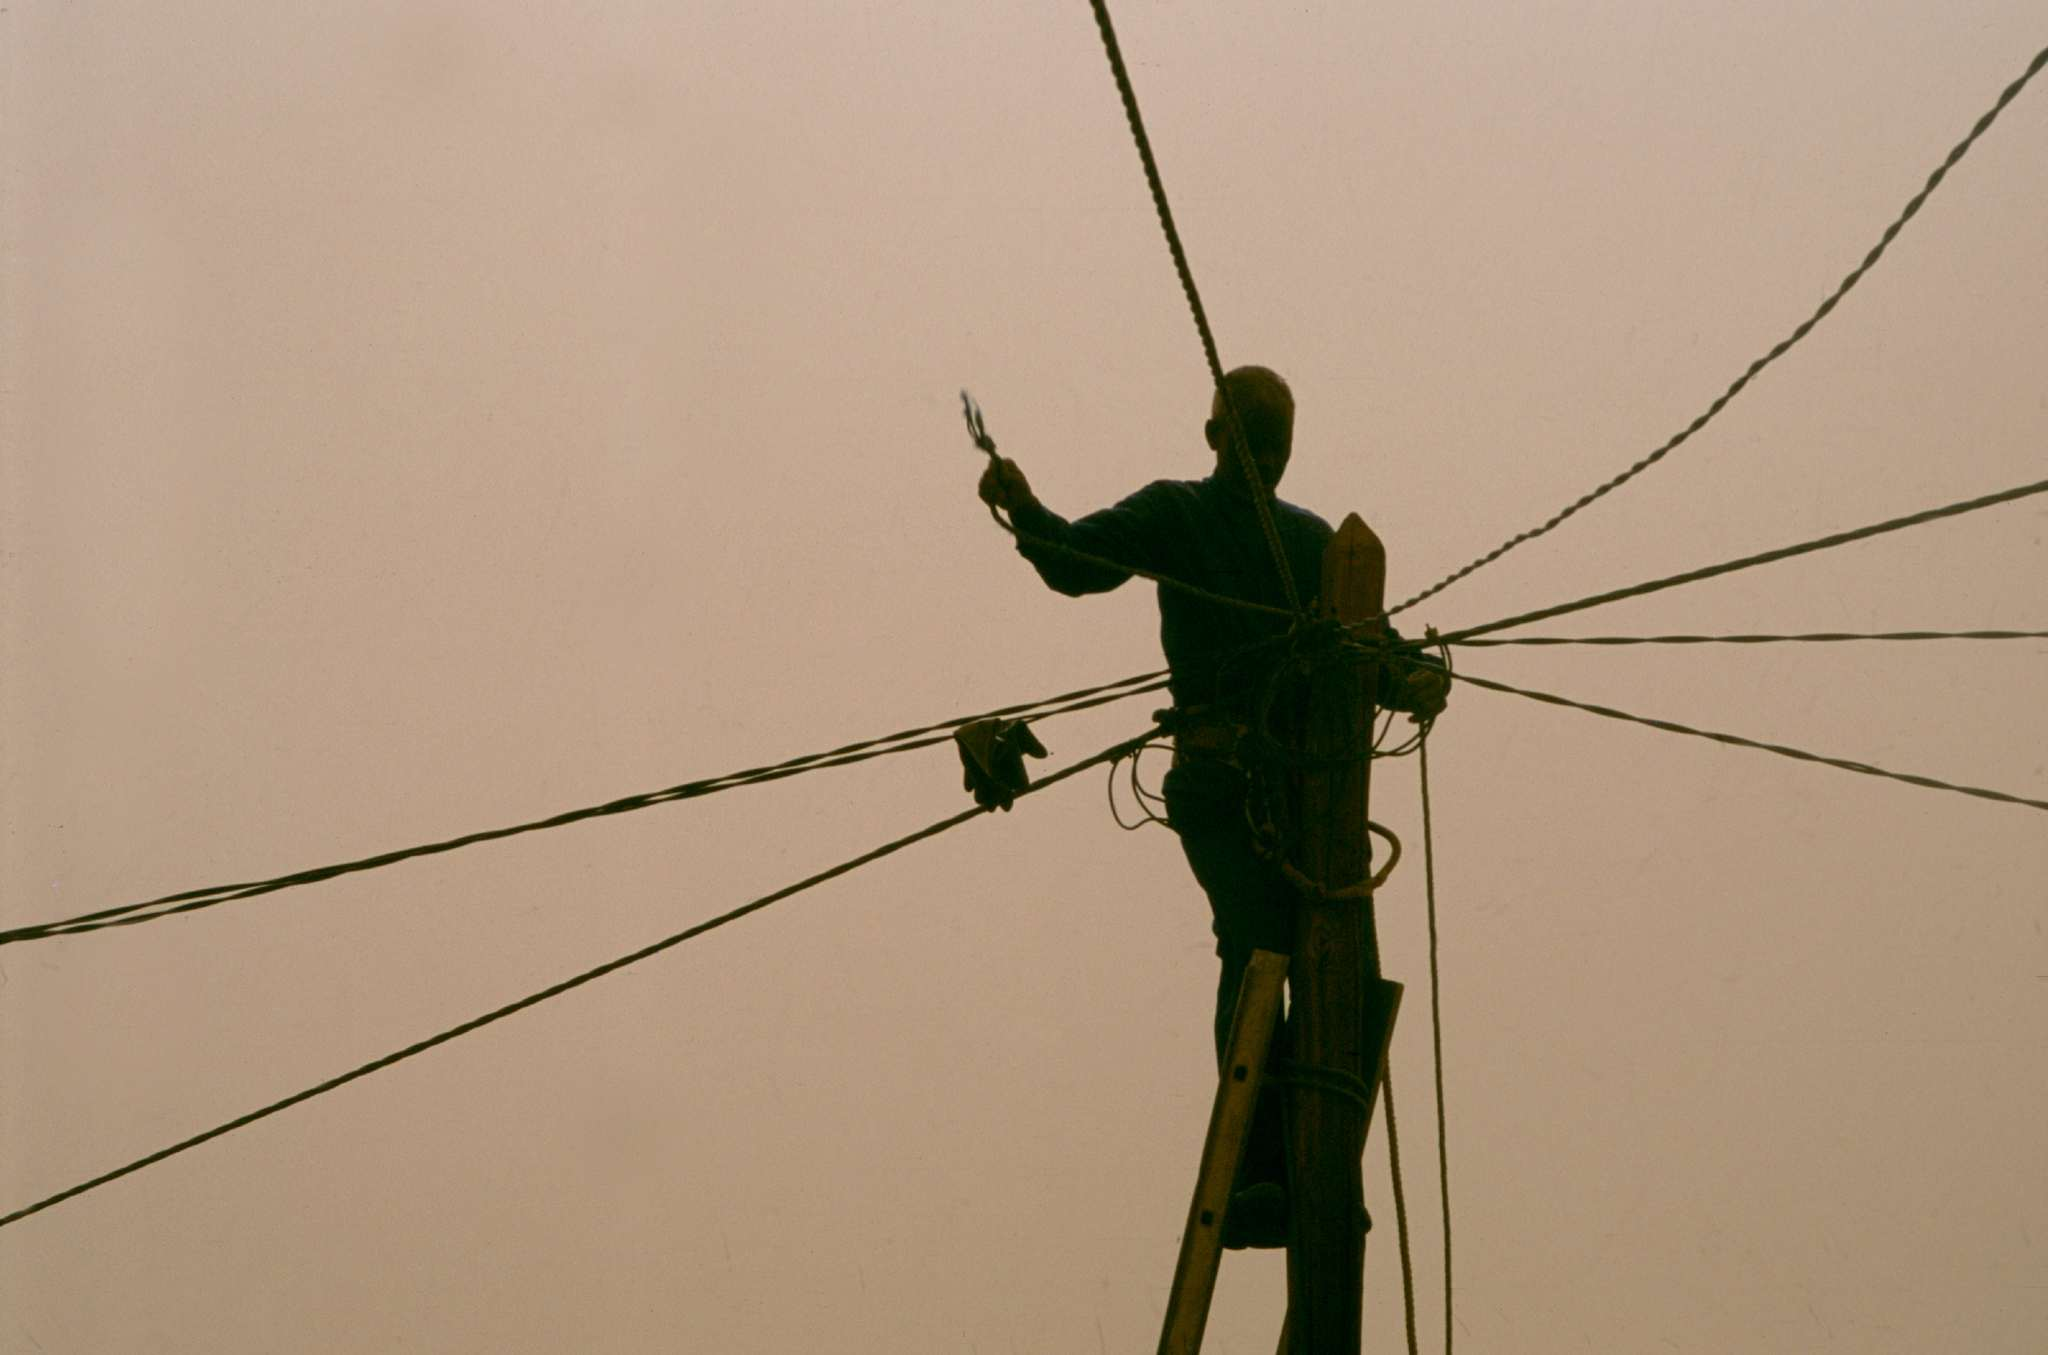 Man on ladder in power lines in Agadez